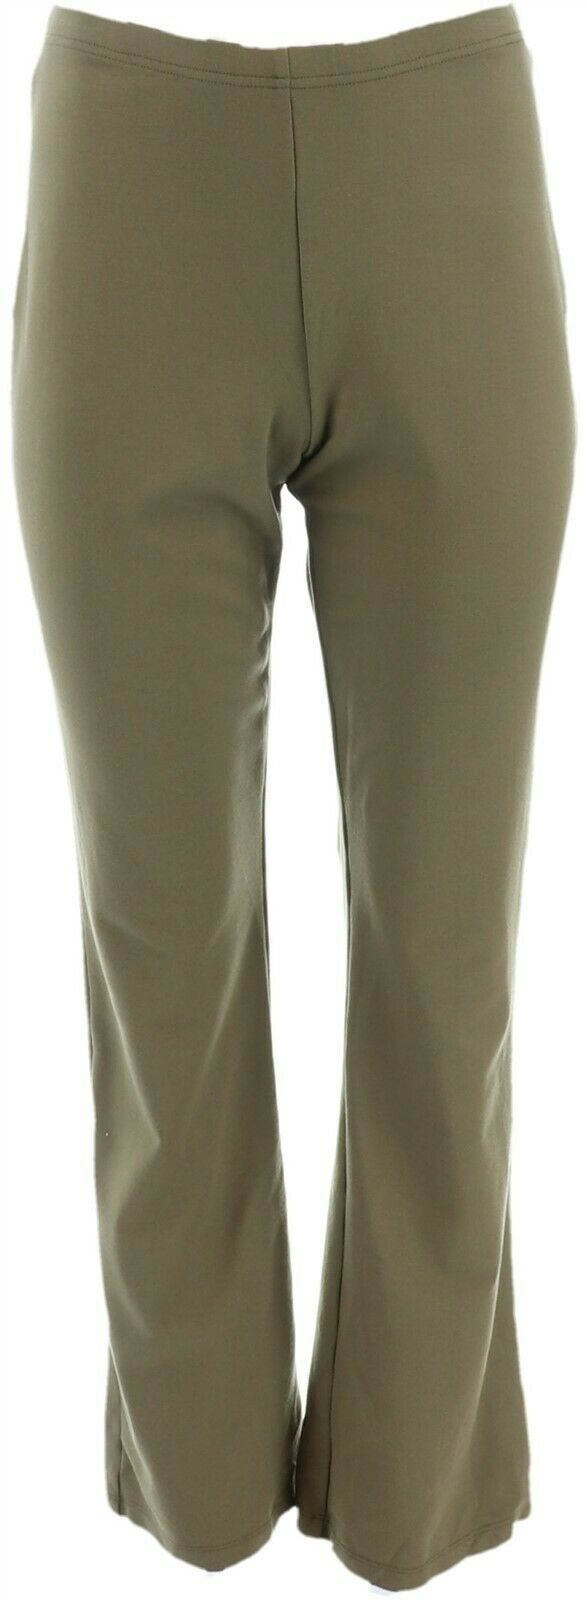 Women with Control Tummy Control Pull-On Printed Pants Olive XL NEW A298539